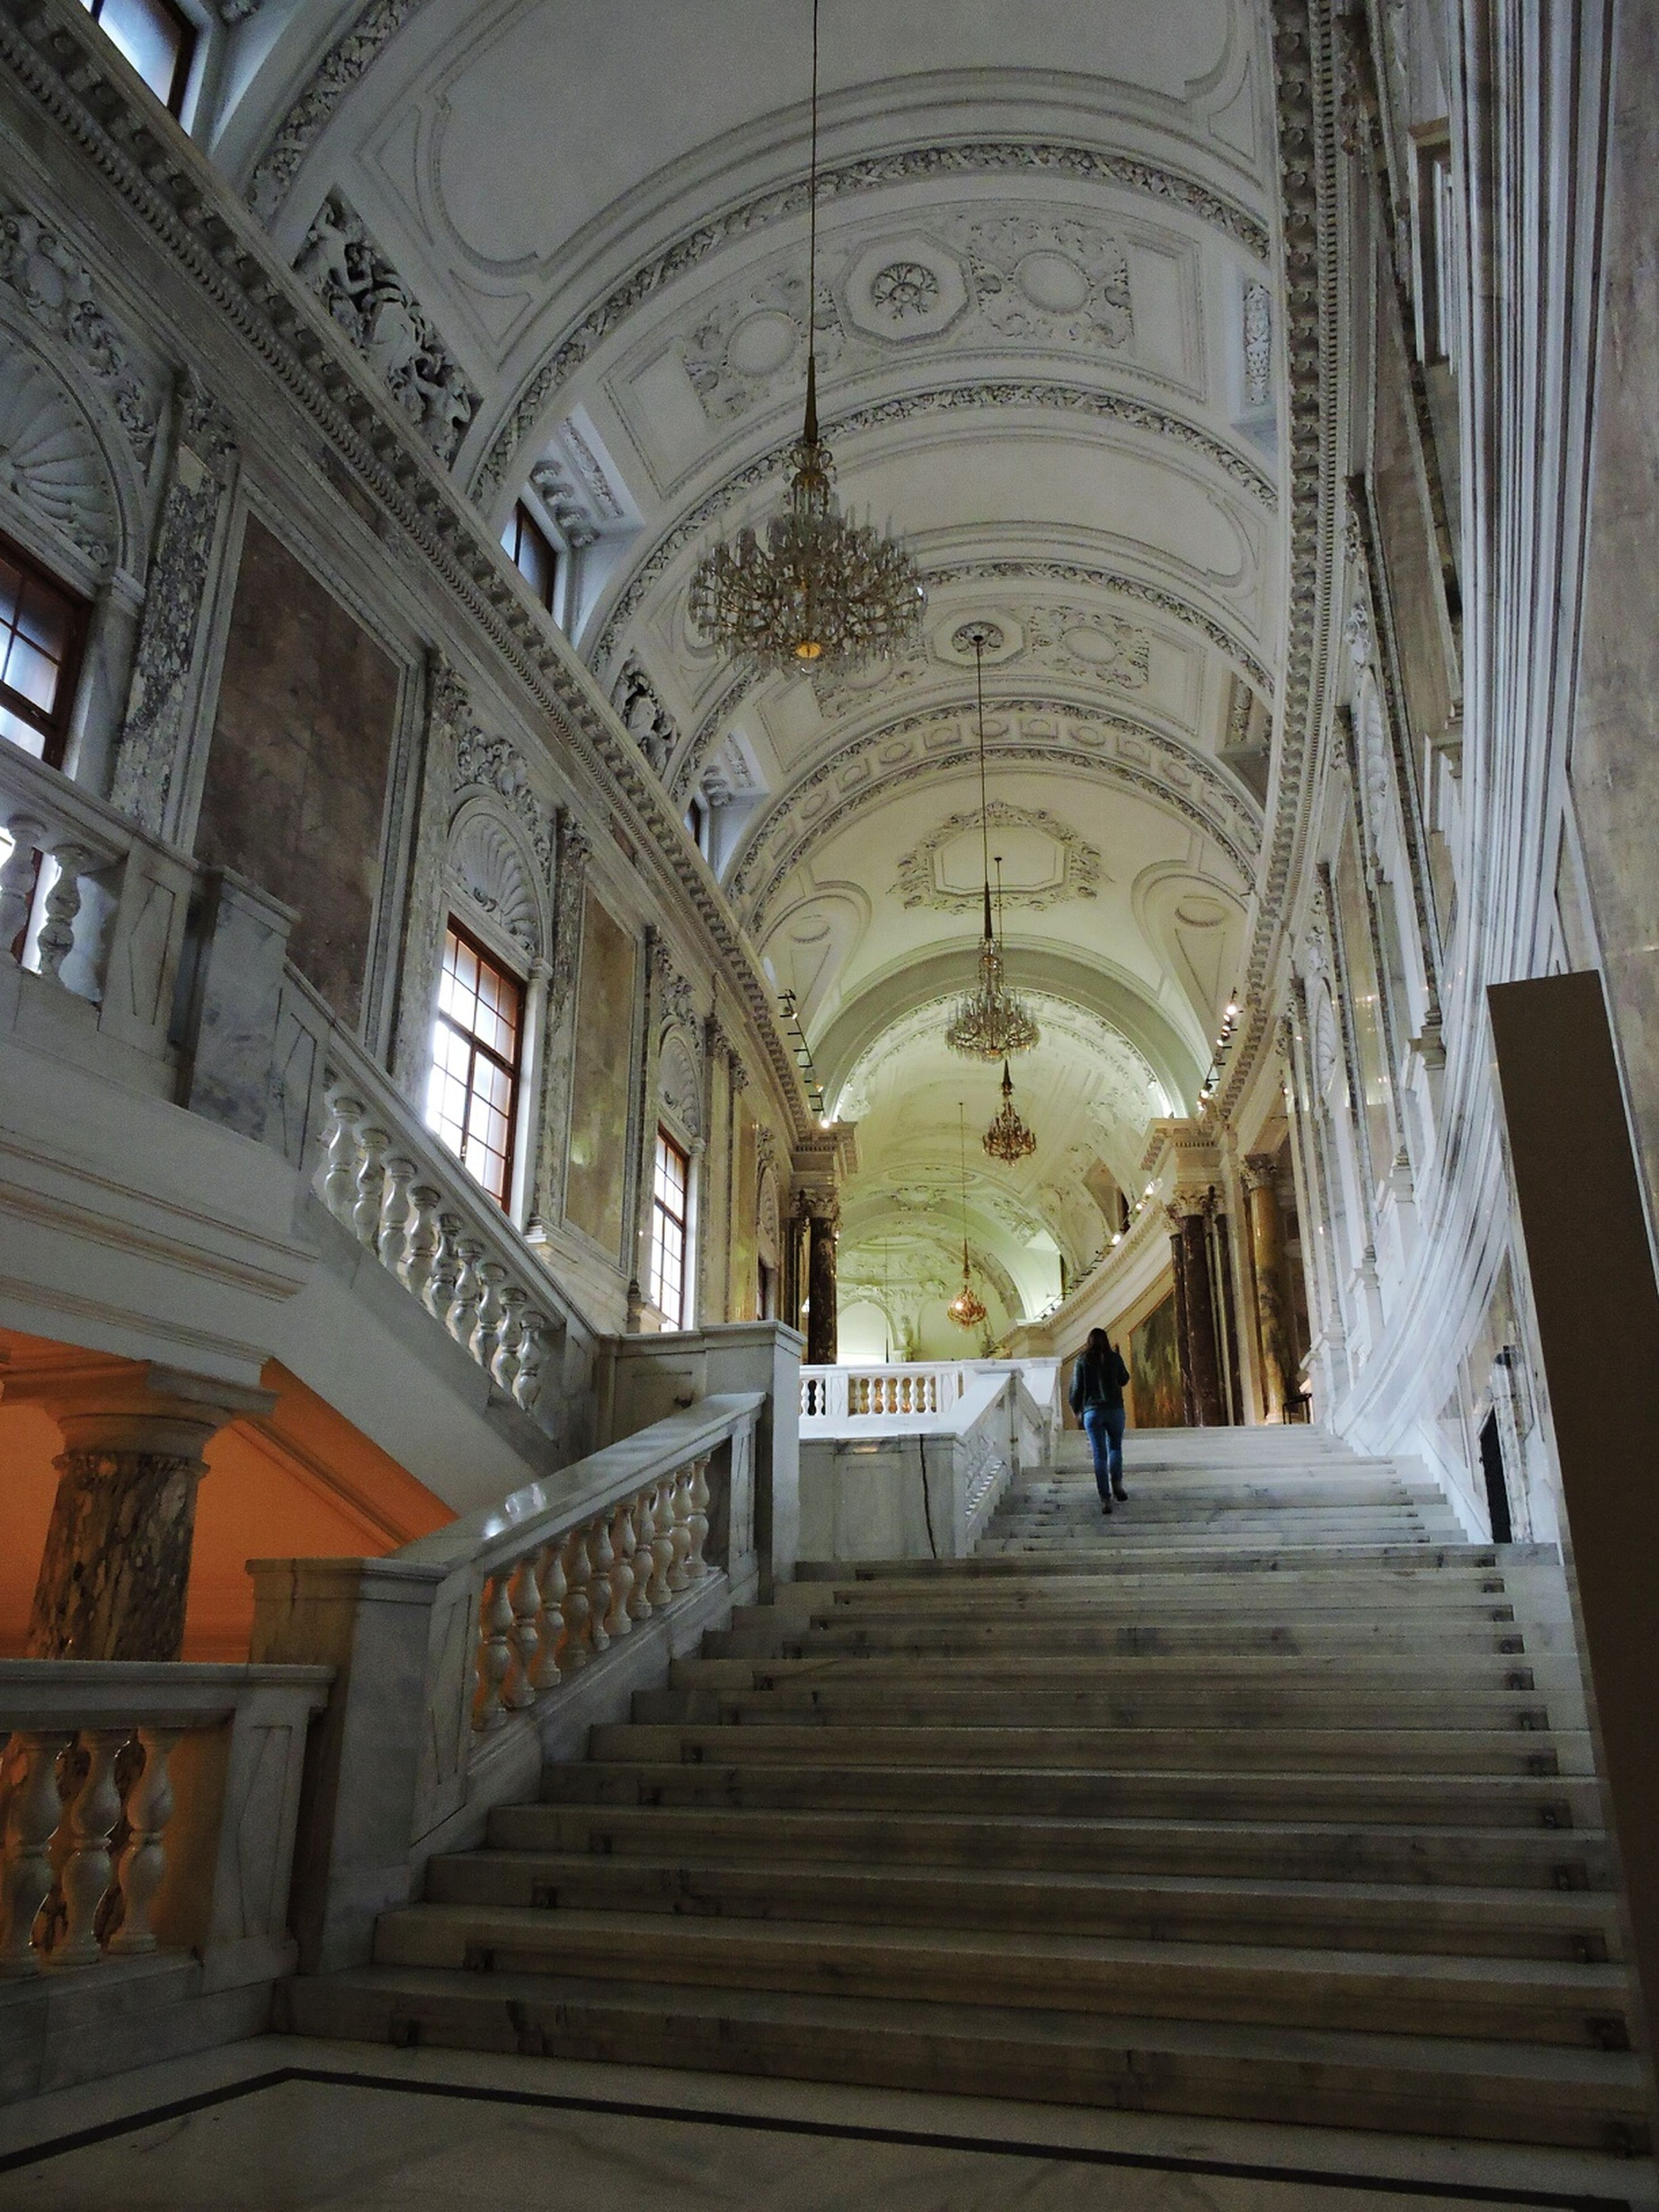 indoors, architecture, ceiling, built structure, arch, lifestyles, men, person, leisure activity, full length, steps, corridor, walking, place of worship, rear view, travel, architectural column, the way forward